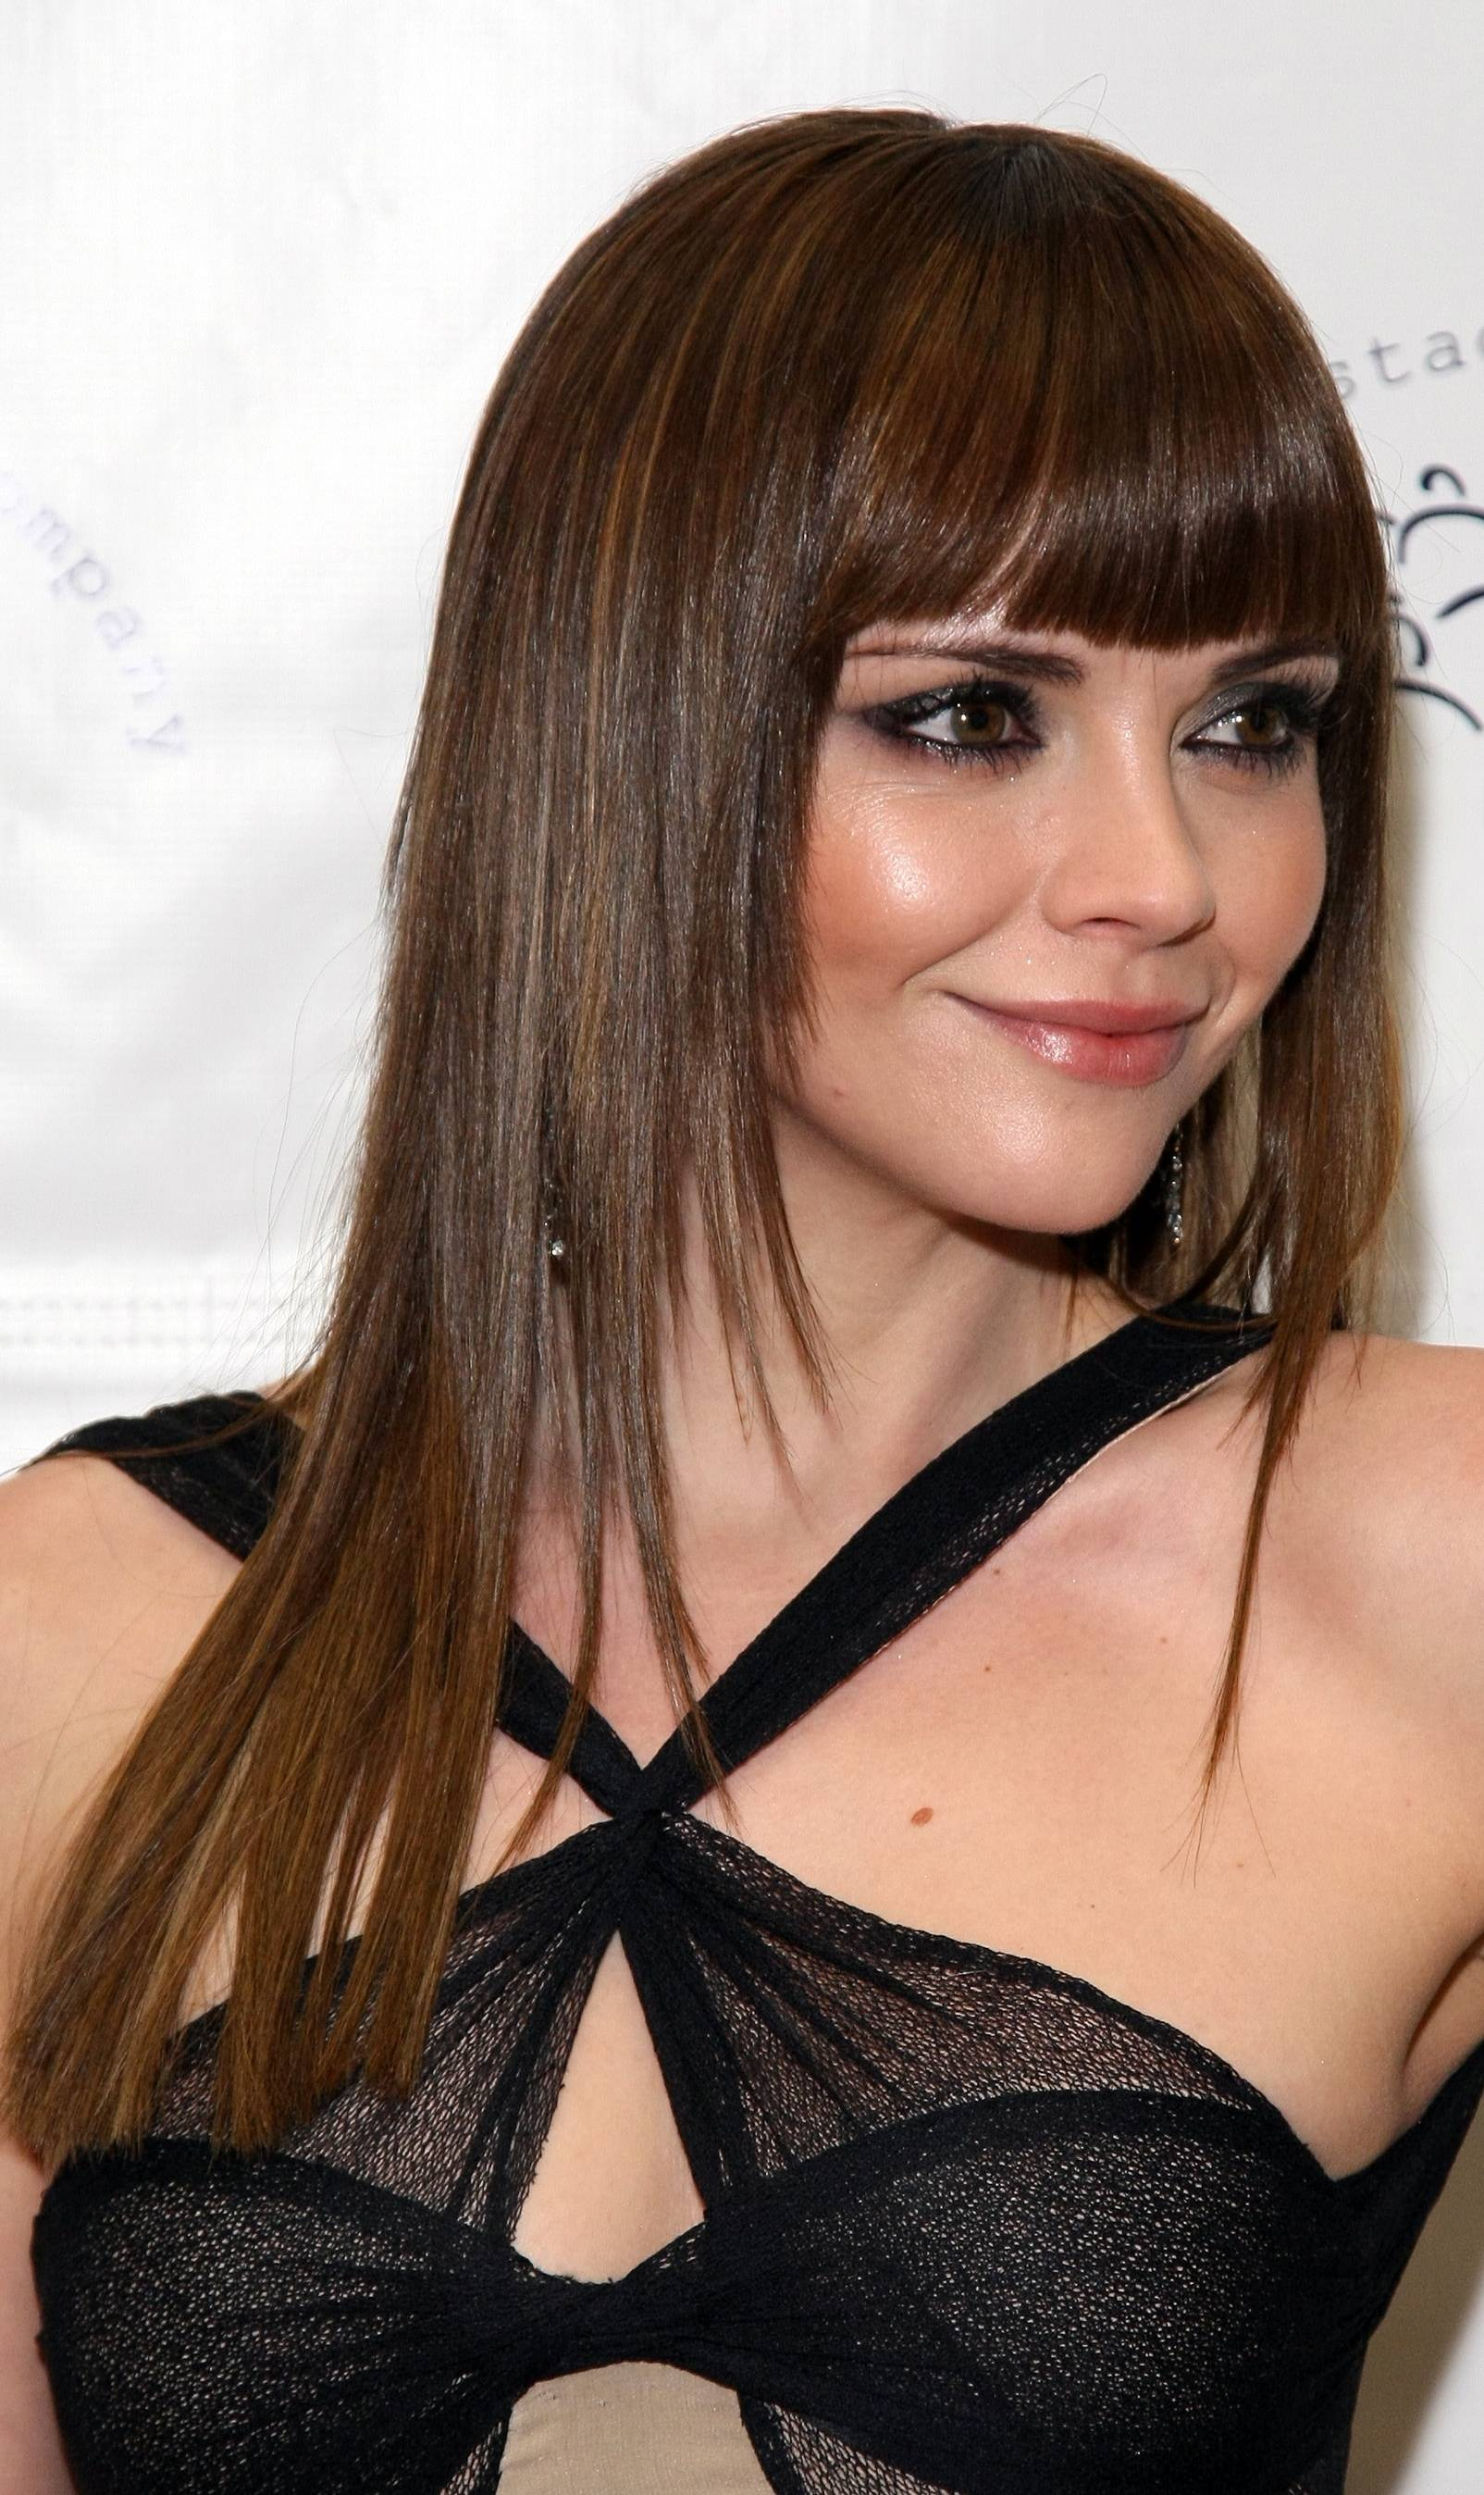 10 Standout Hairstyles With Bangs For Long And Layered Hair Round Faces HairStyles Woman